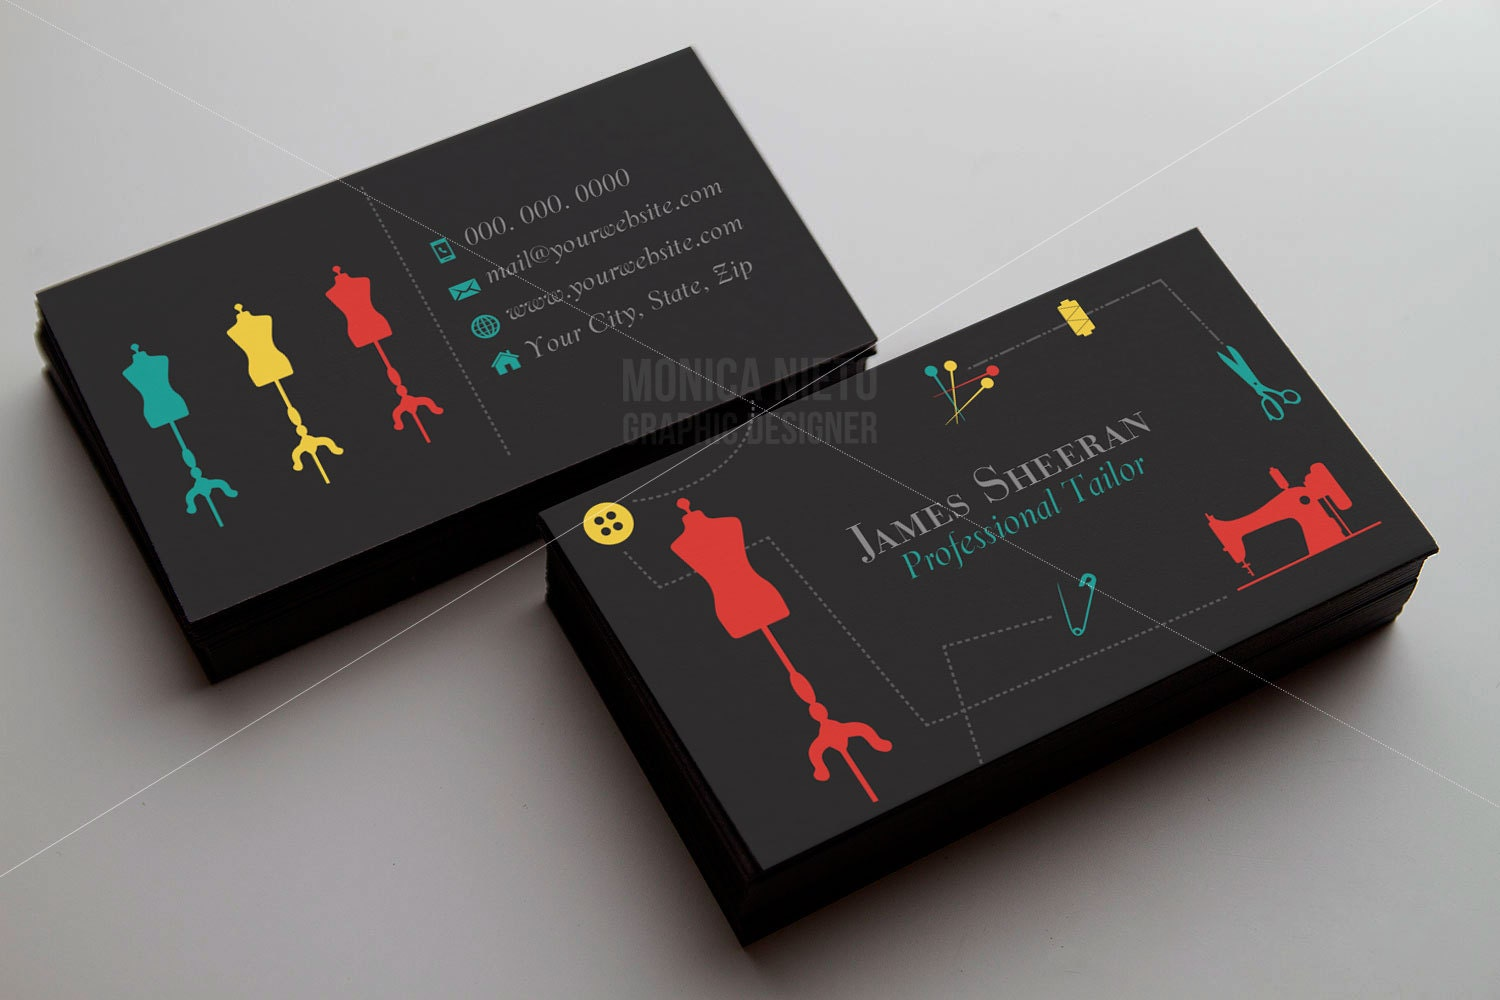 Tailoring Services Business Card/ Tailor Business Cards/